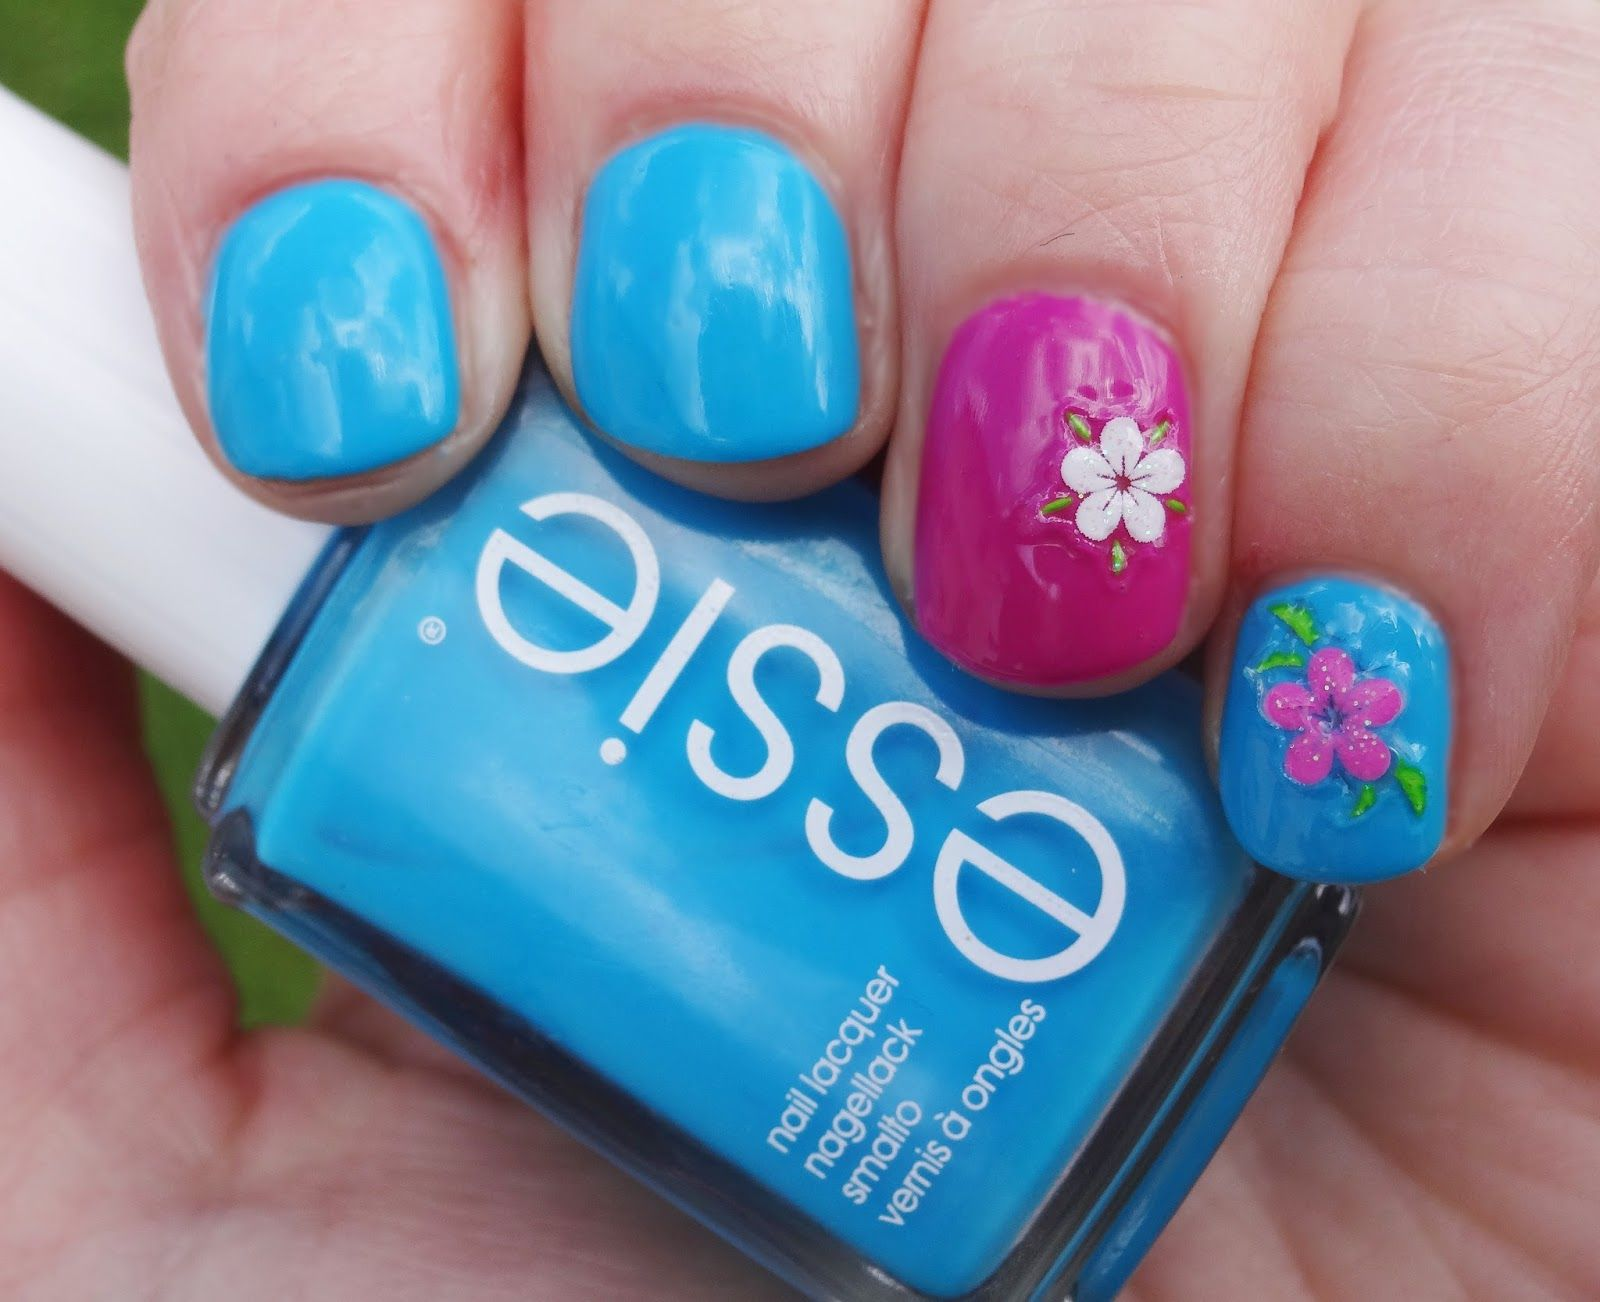 Essie - I'm addicted (in Kombination mit too taboo)